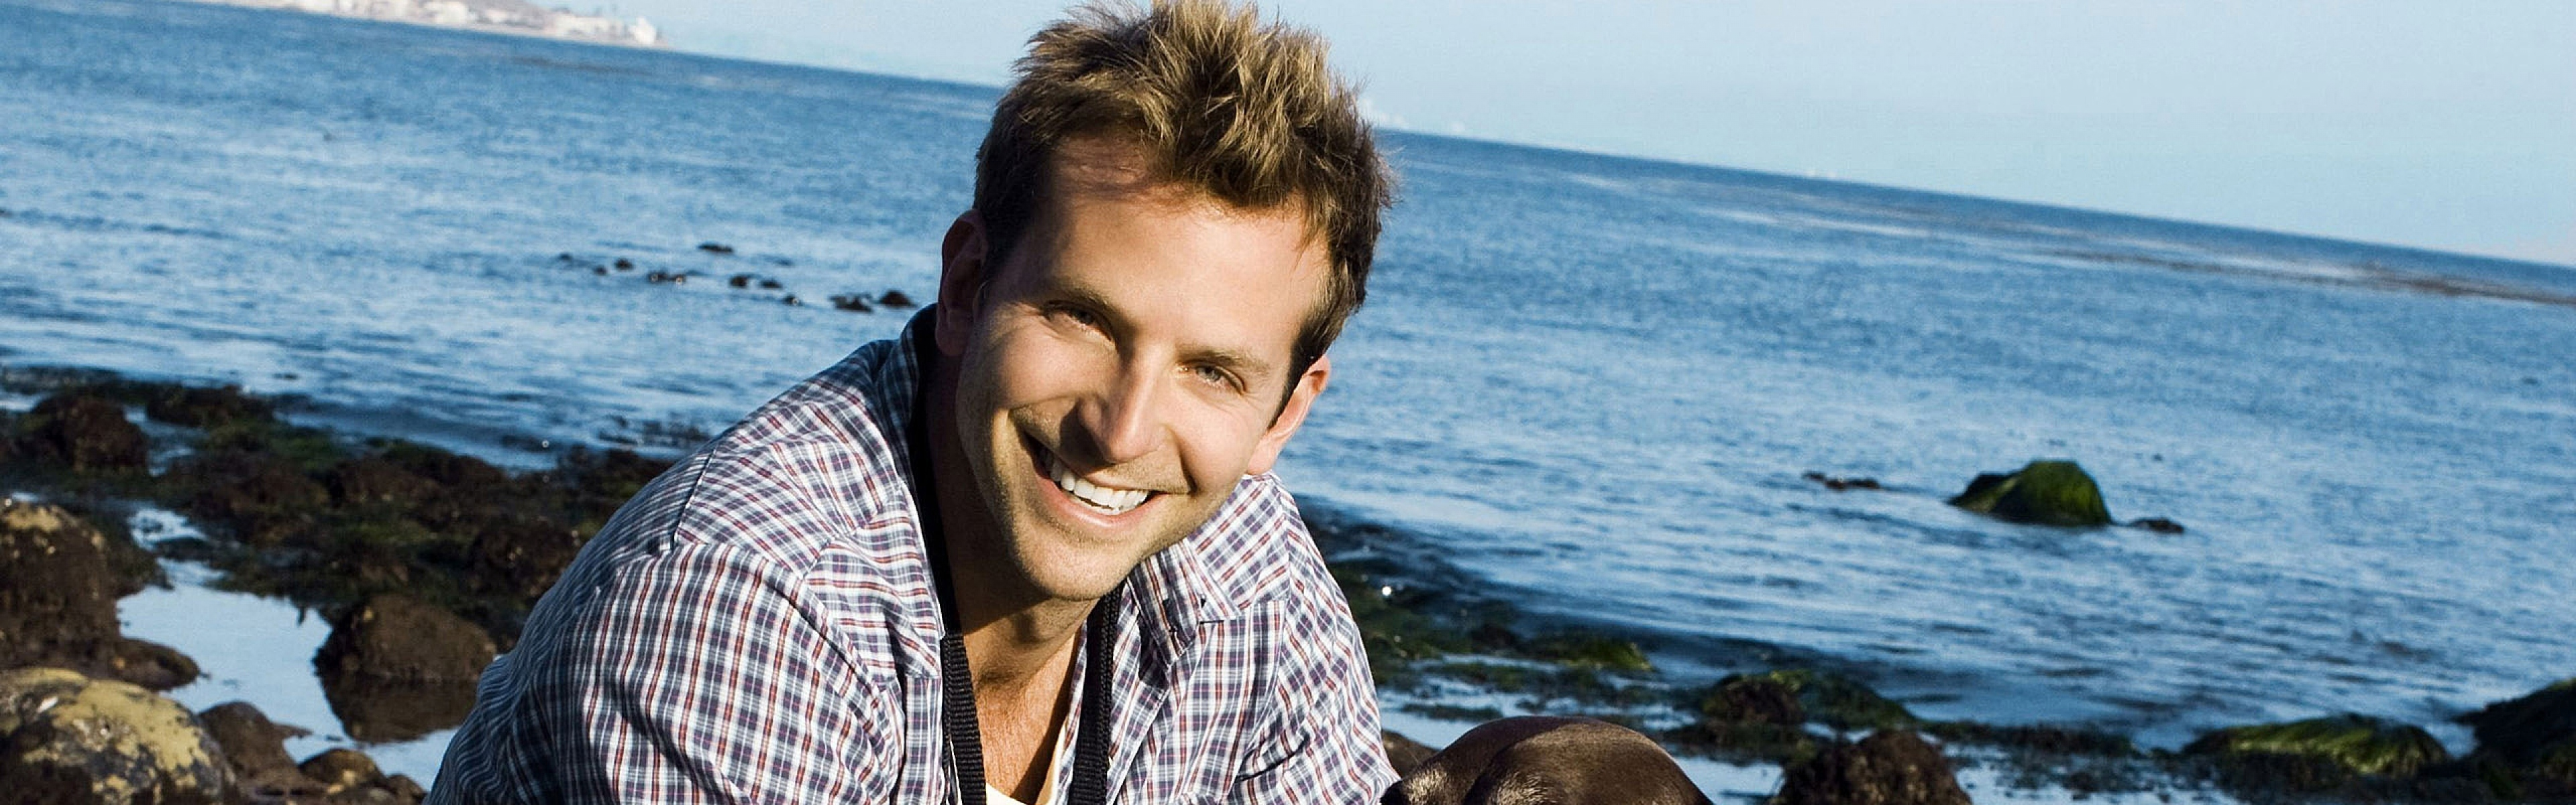 Bradley Cooper Wallpapers 3840x1200